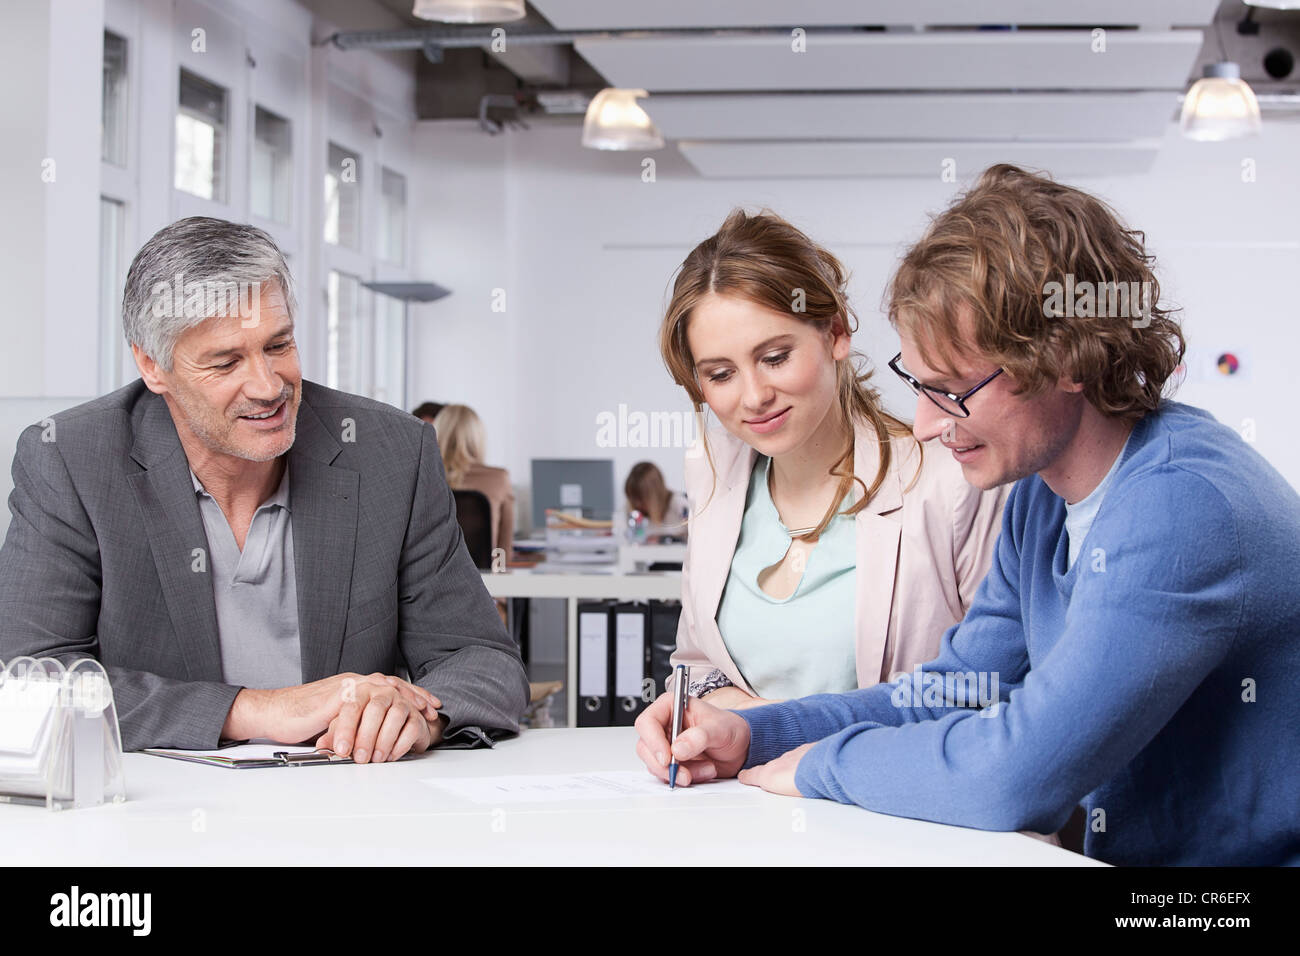 Germany, Bavaria, Munich, Man writing document while colleagues watching him - Stock Image